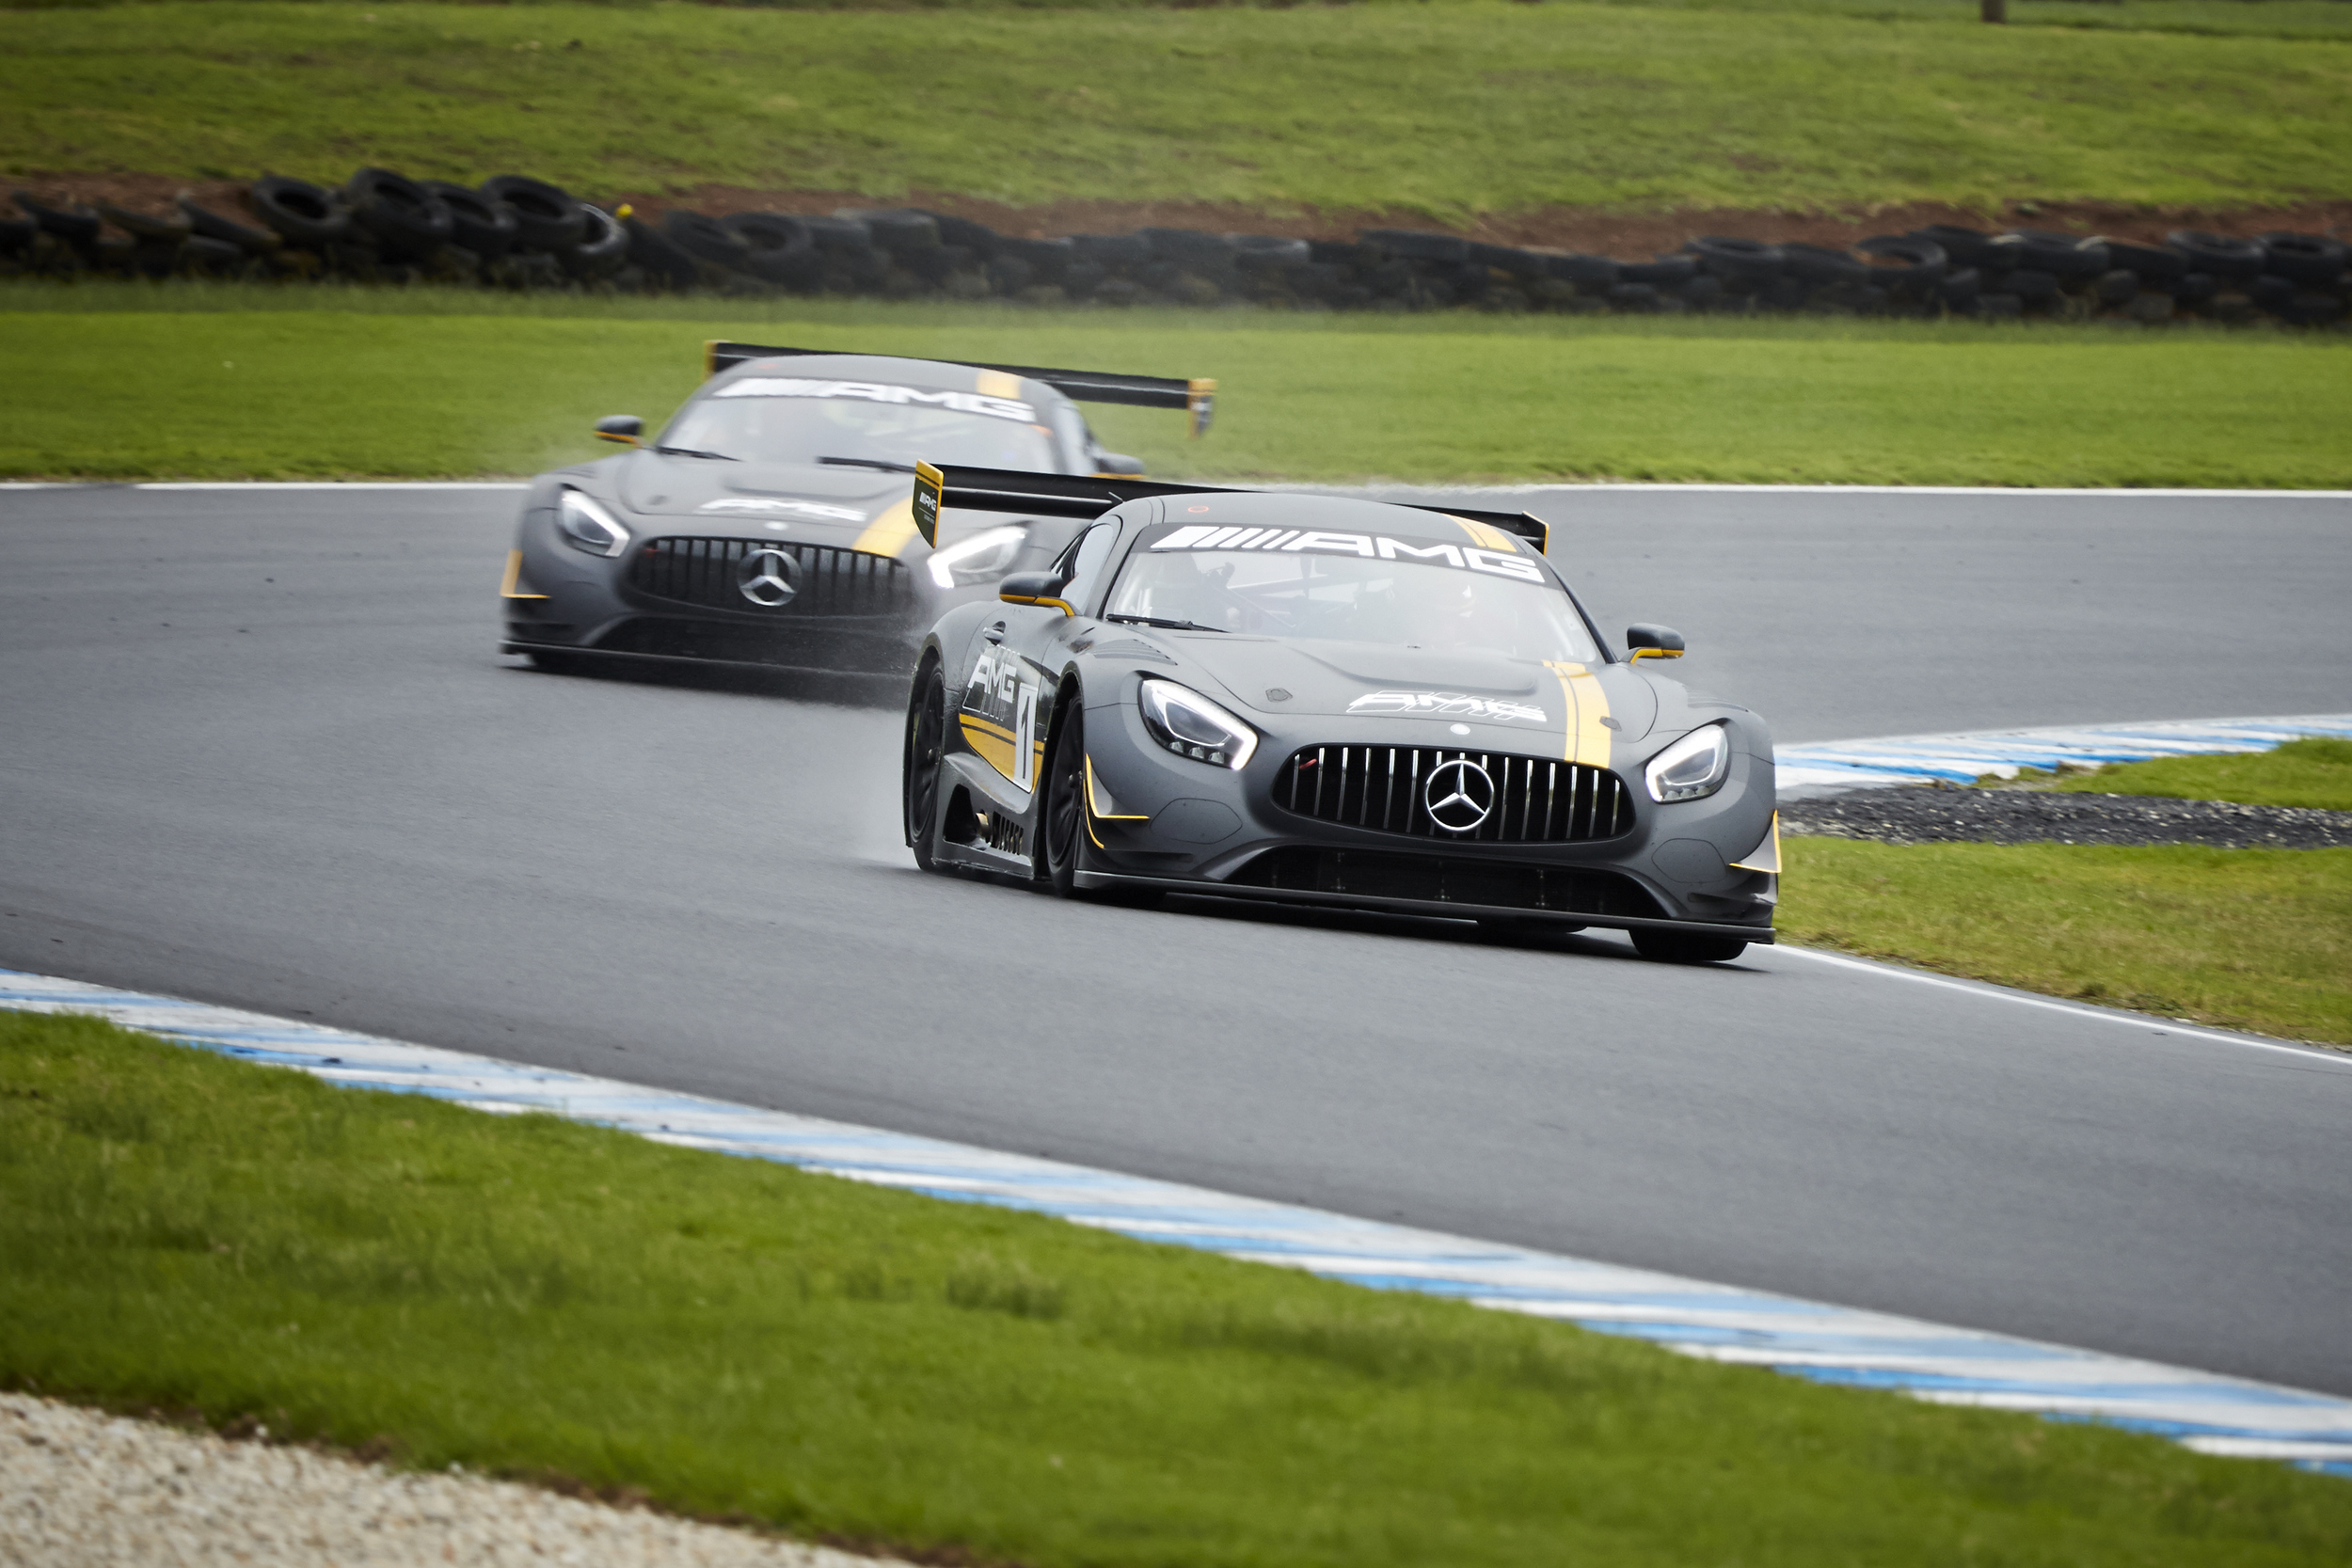 AMG-PhillipIsland-23-5-660.jpg